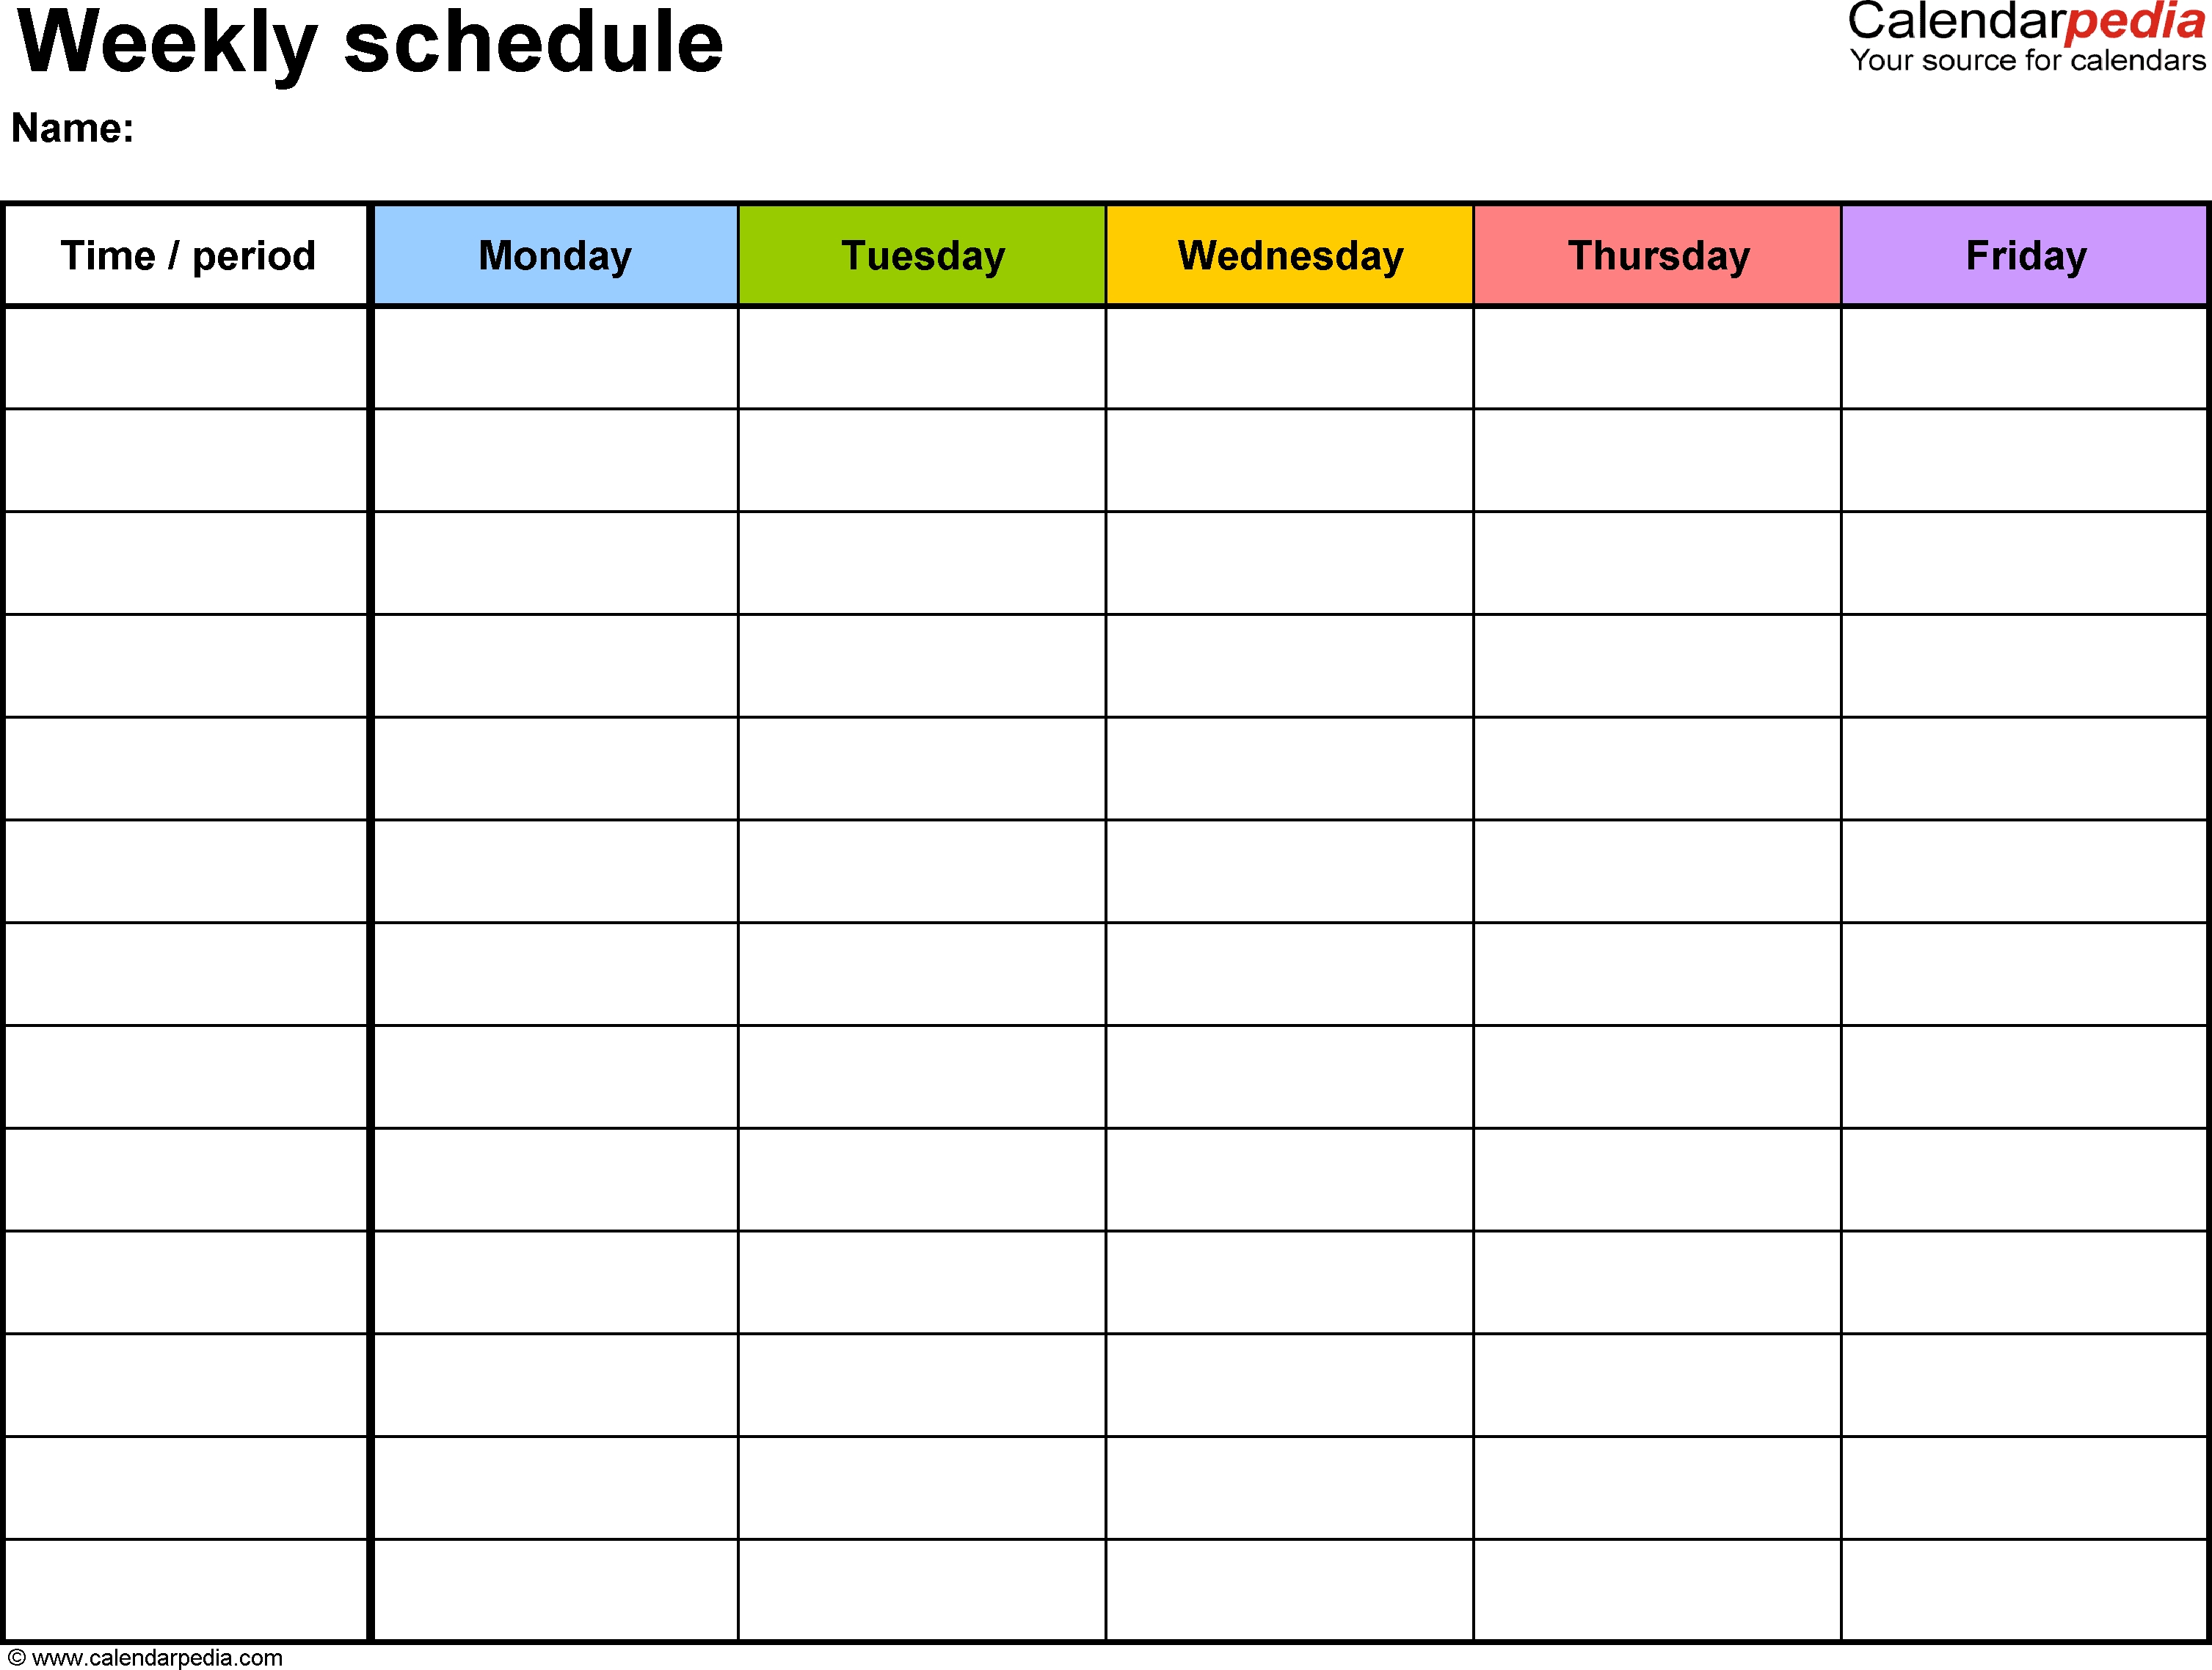 Free Weekly Schedule Templates For Excel - 18 Templates in One Week Calendar Template Printable